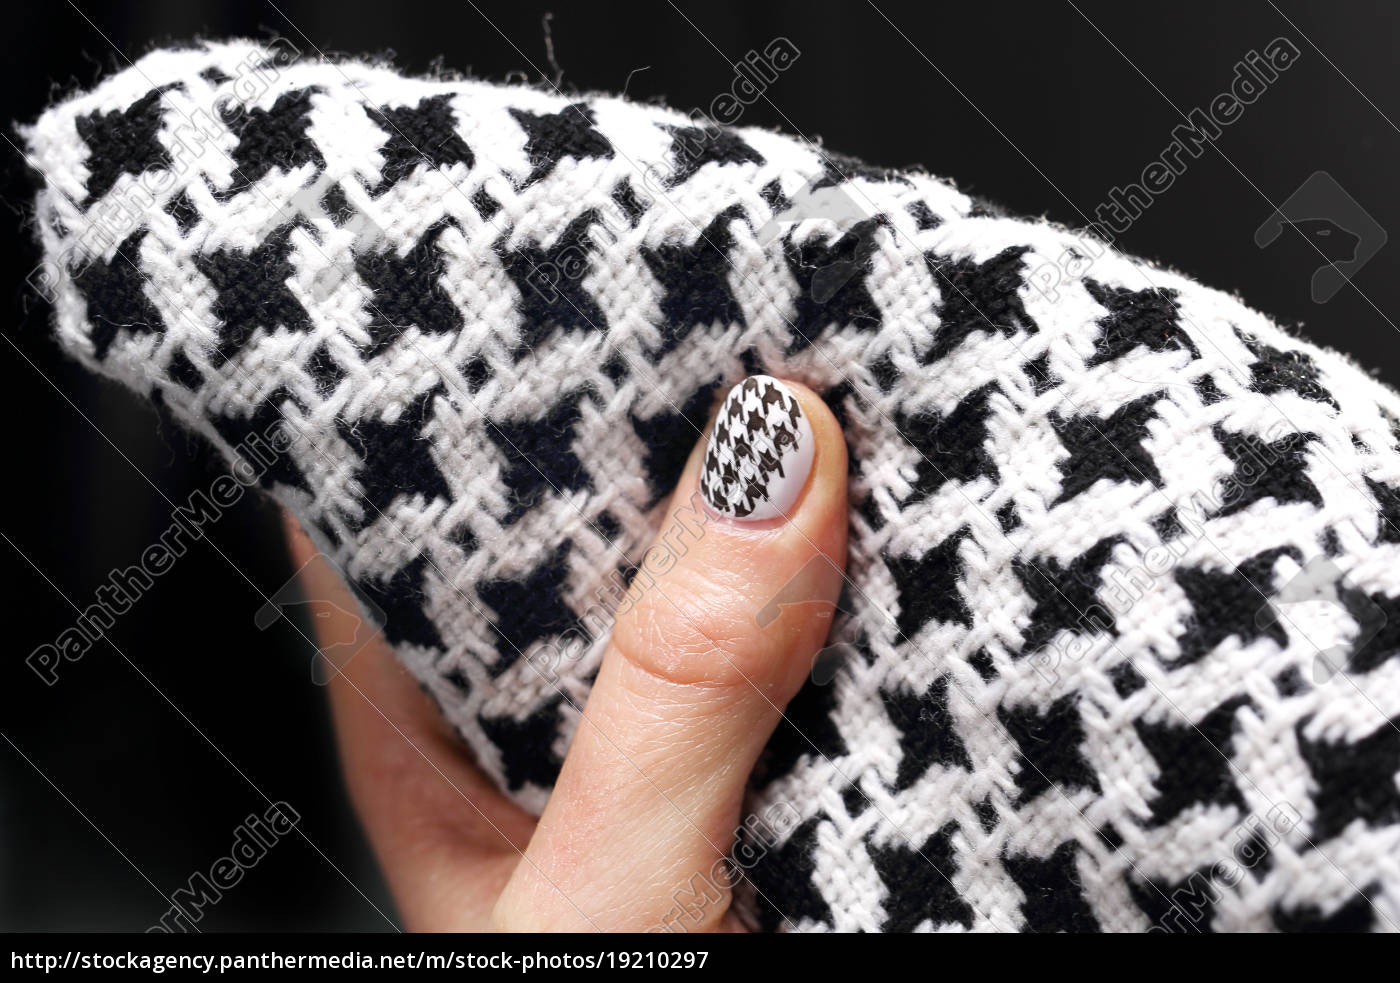 chanel, grille, black, and, white, pattern, on - 19210297